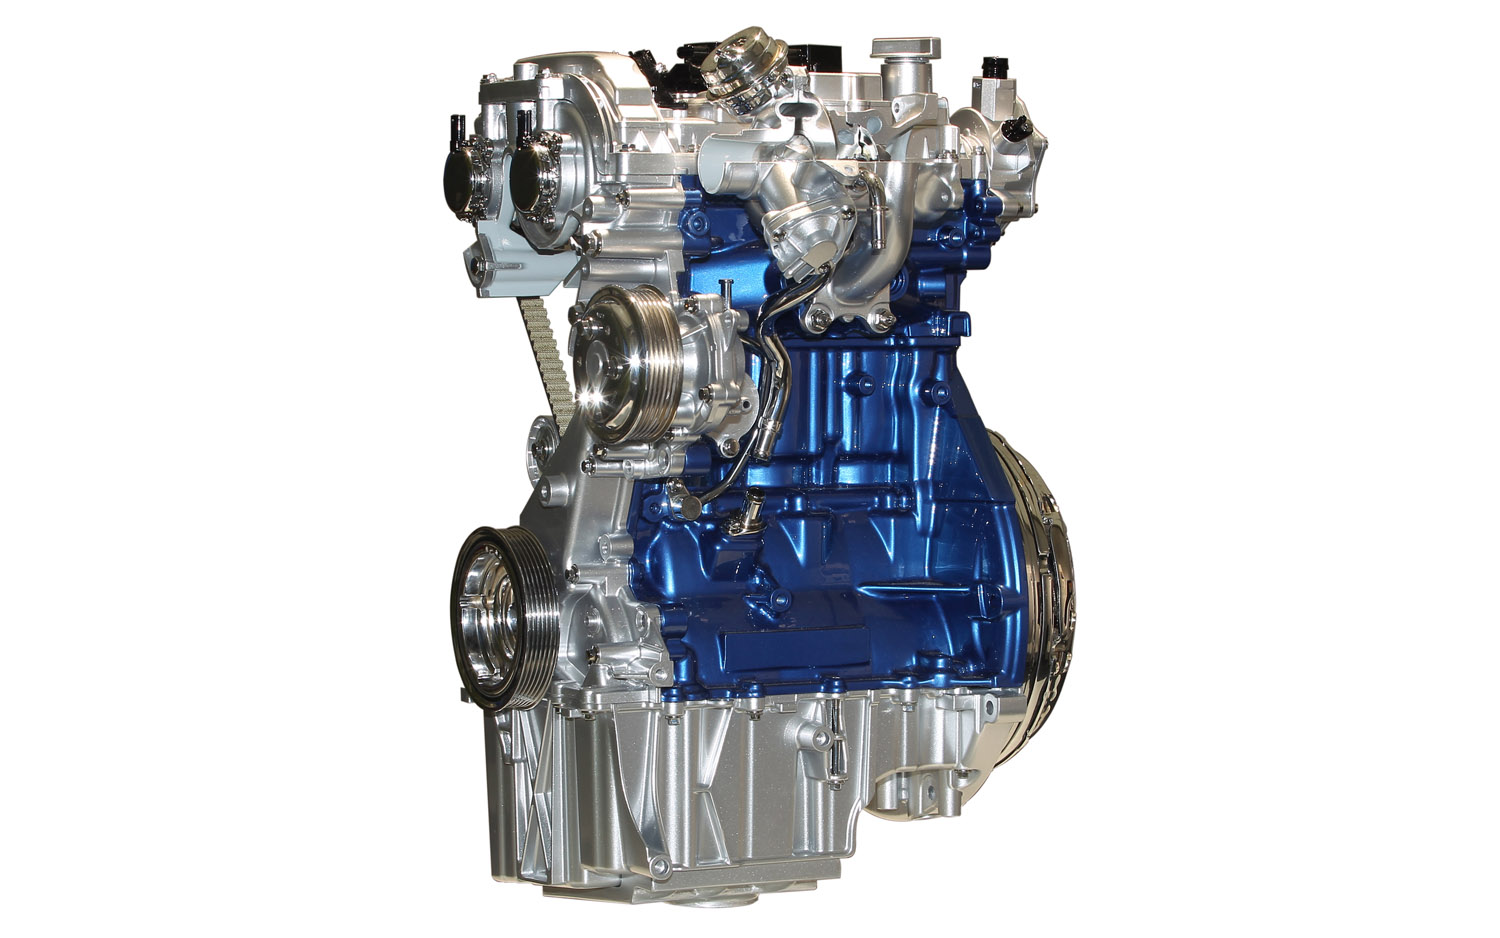 Ford-1.0-liter-EcoBoost-Engine.jpg